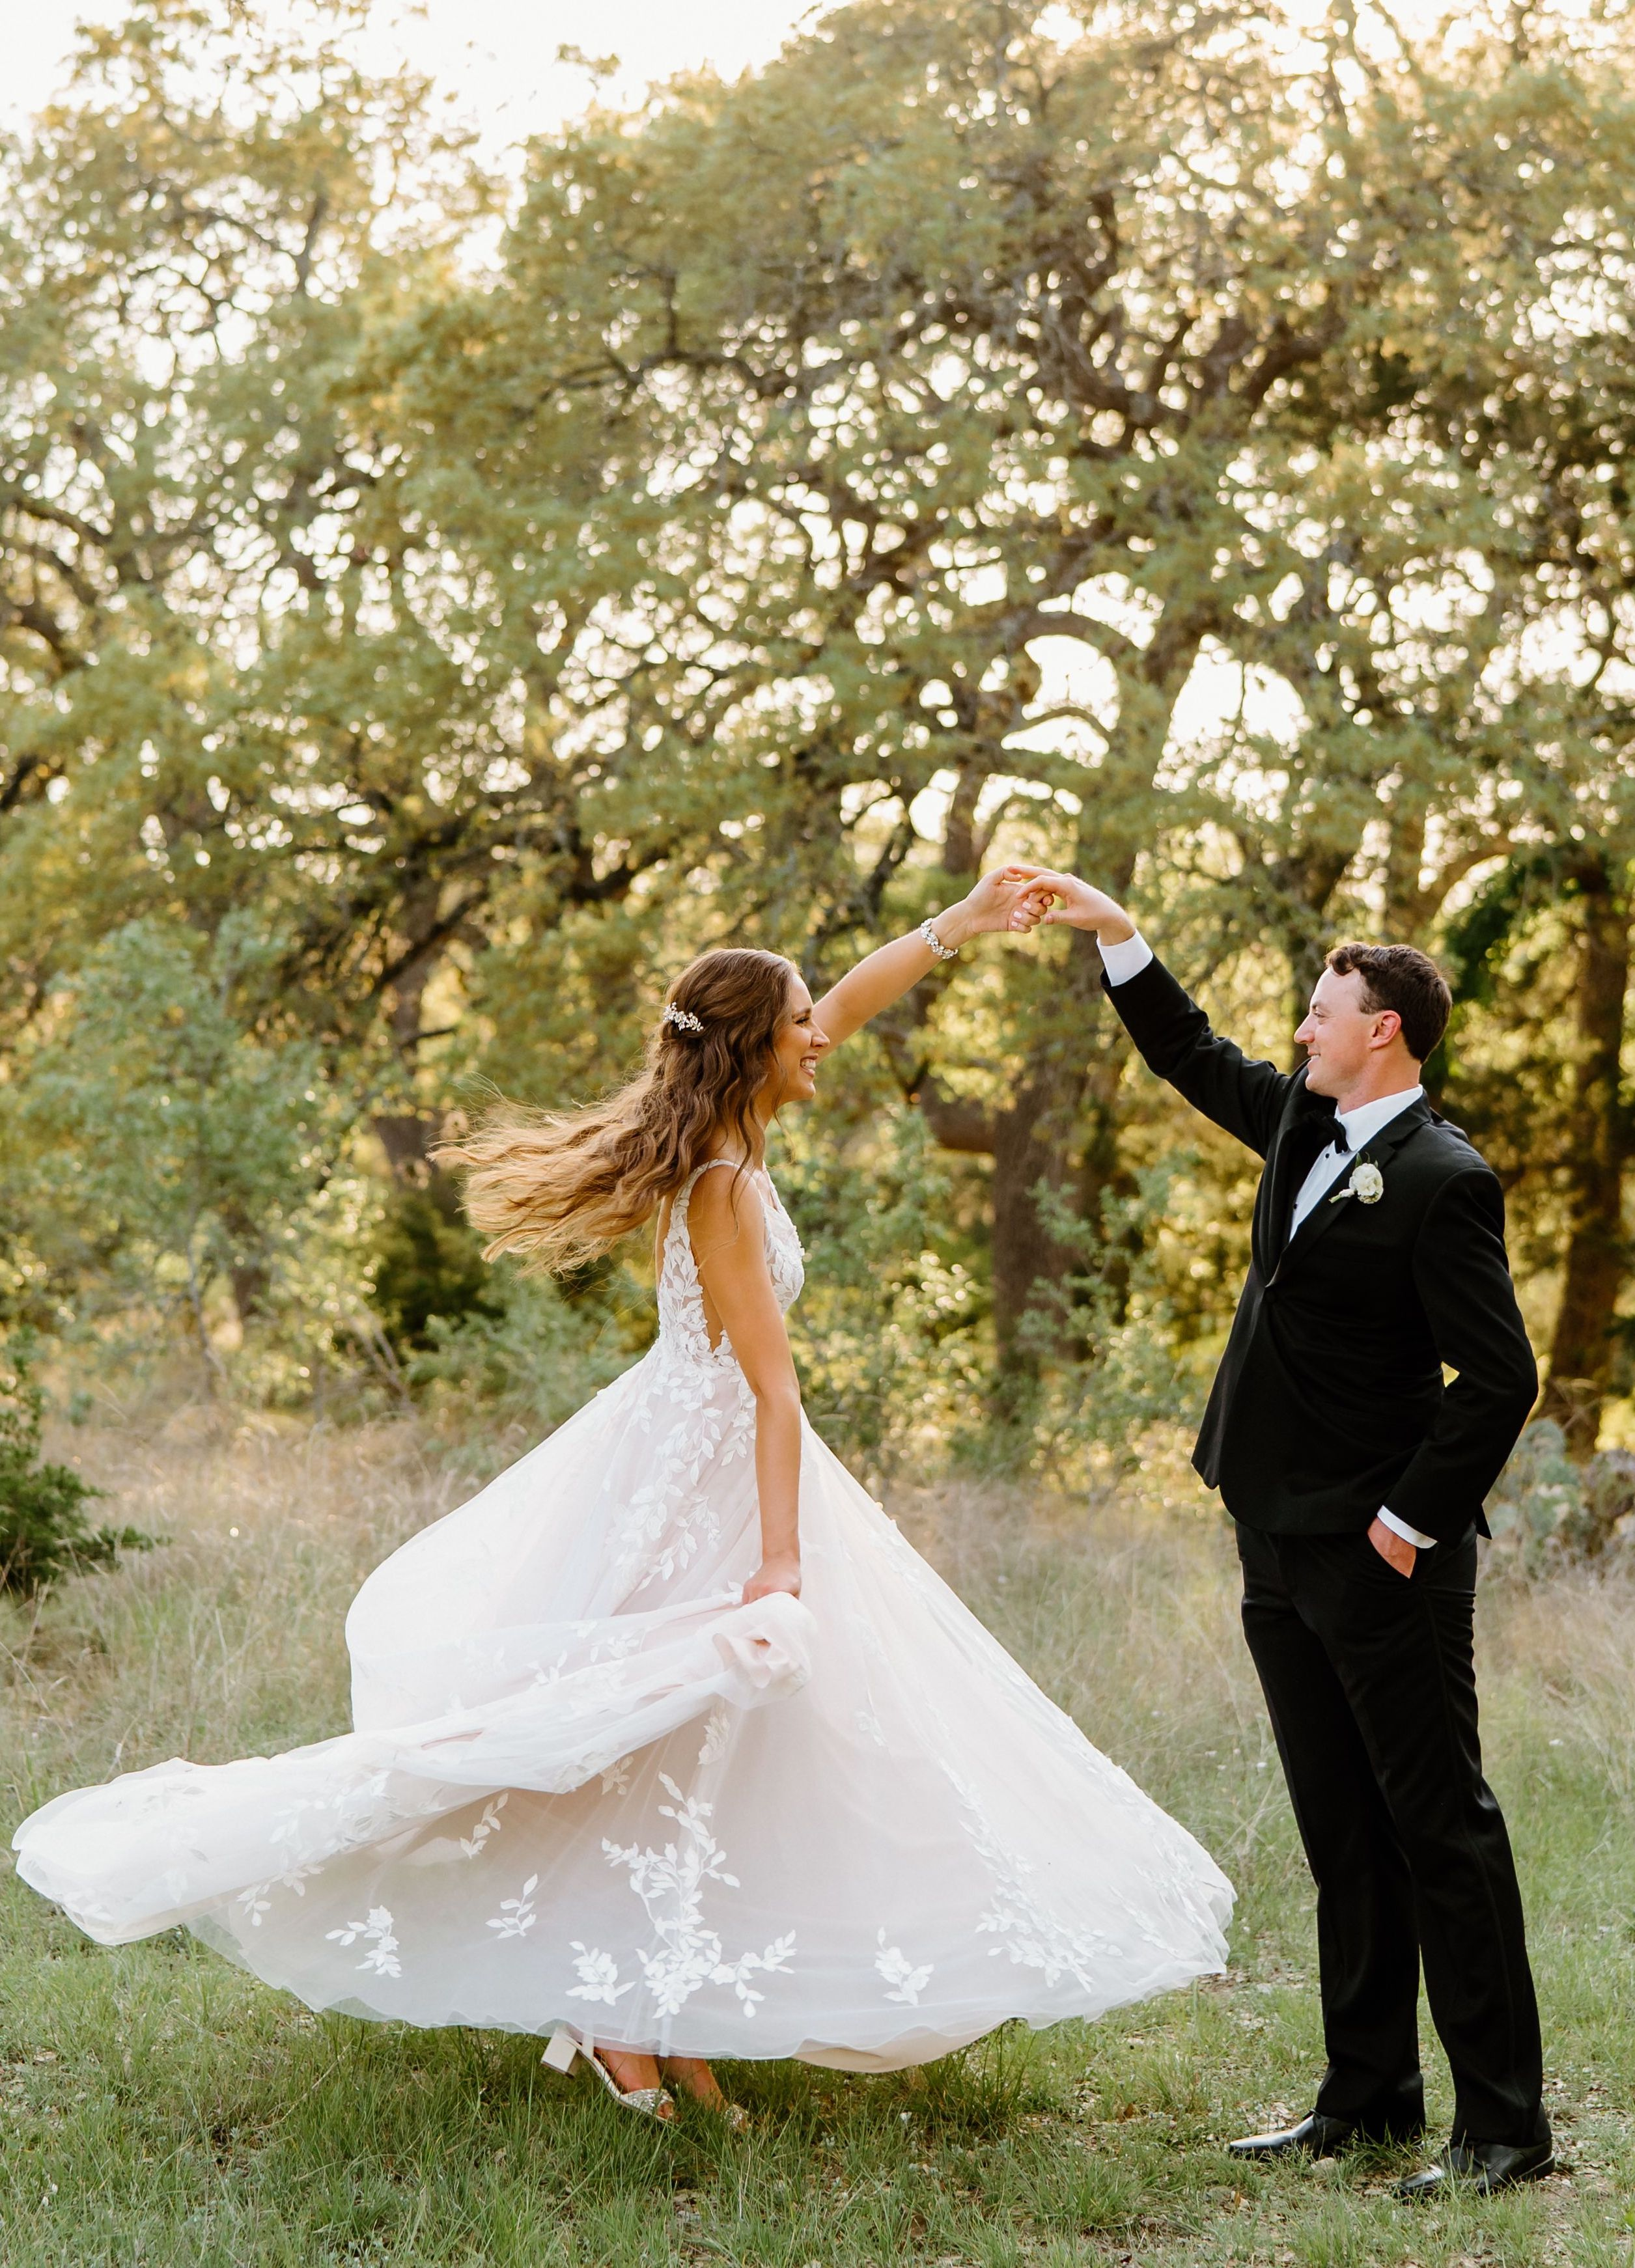 A groom twirls his new bride as her floral-adorned dress flares out revealing her sparkly block heels.